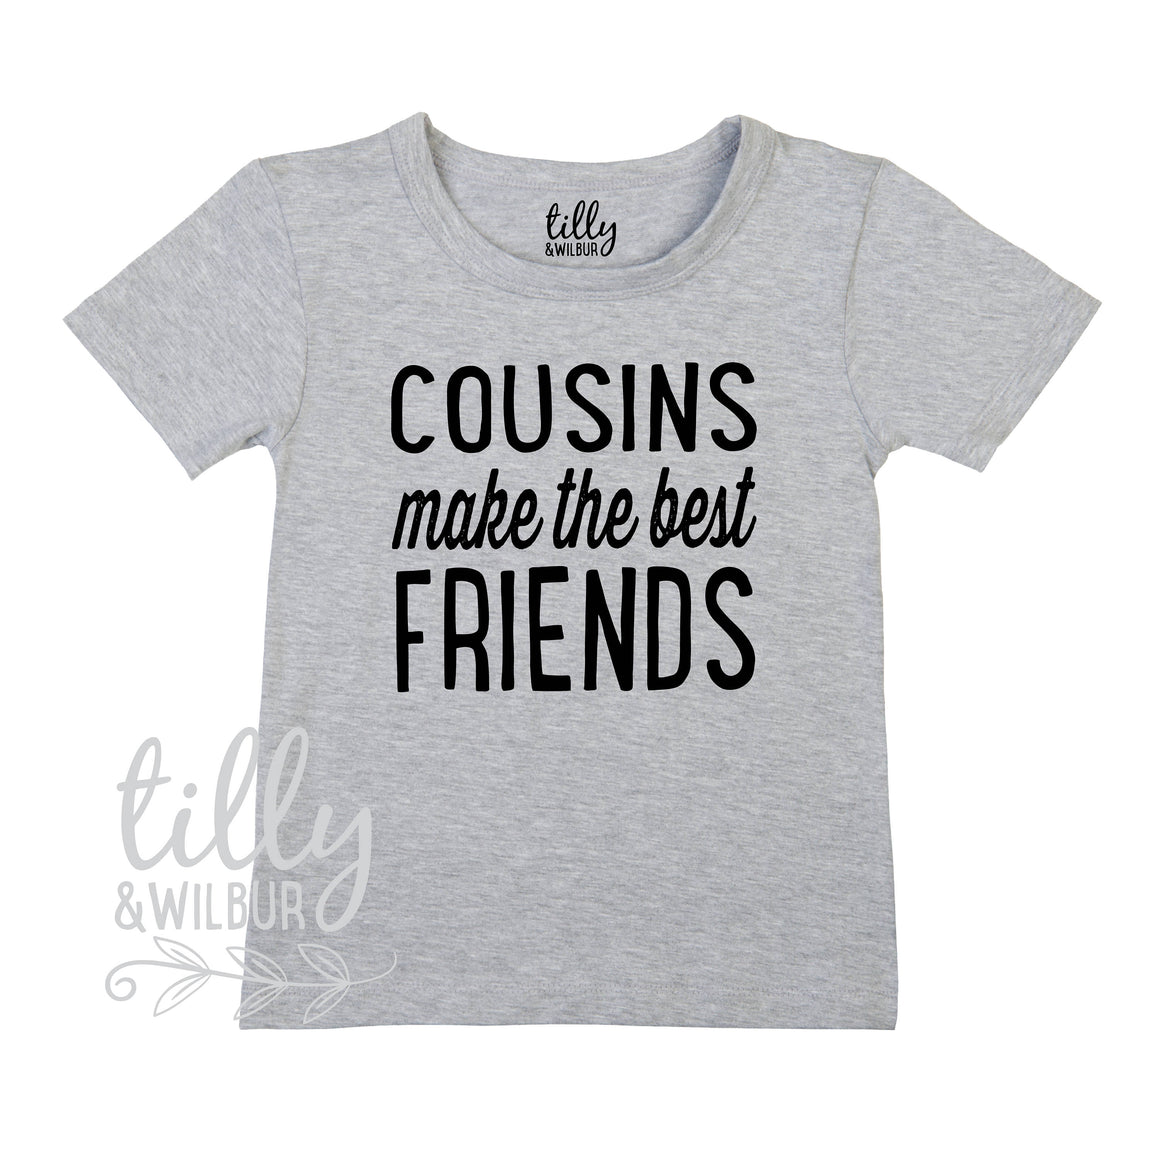 Cousins Make The Best Friends T-Shirt For Boys & Girls, Pregnancy Announcement Gift, Family Announcement T-Shirt, Unisex Cousin Shirt